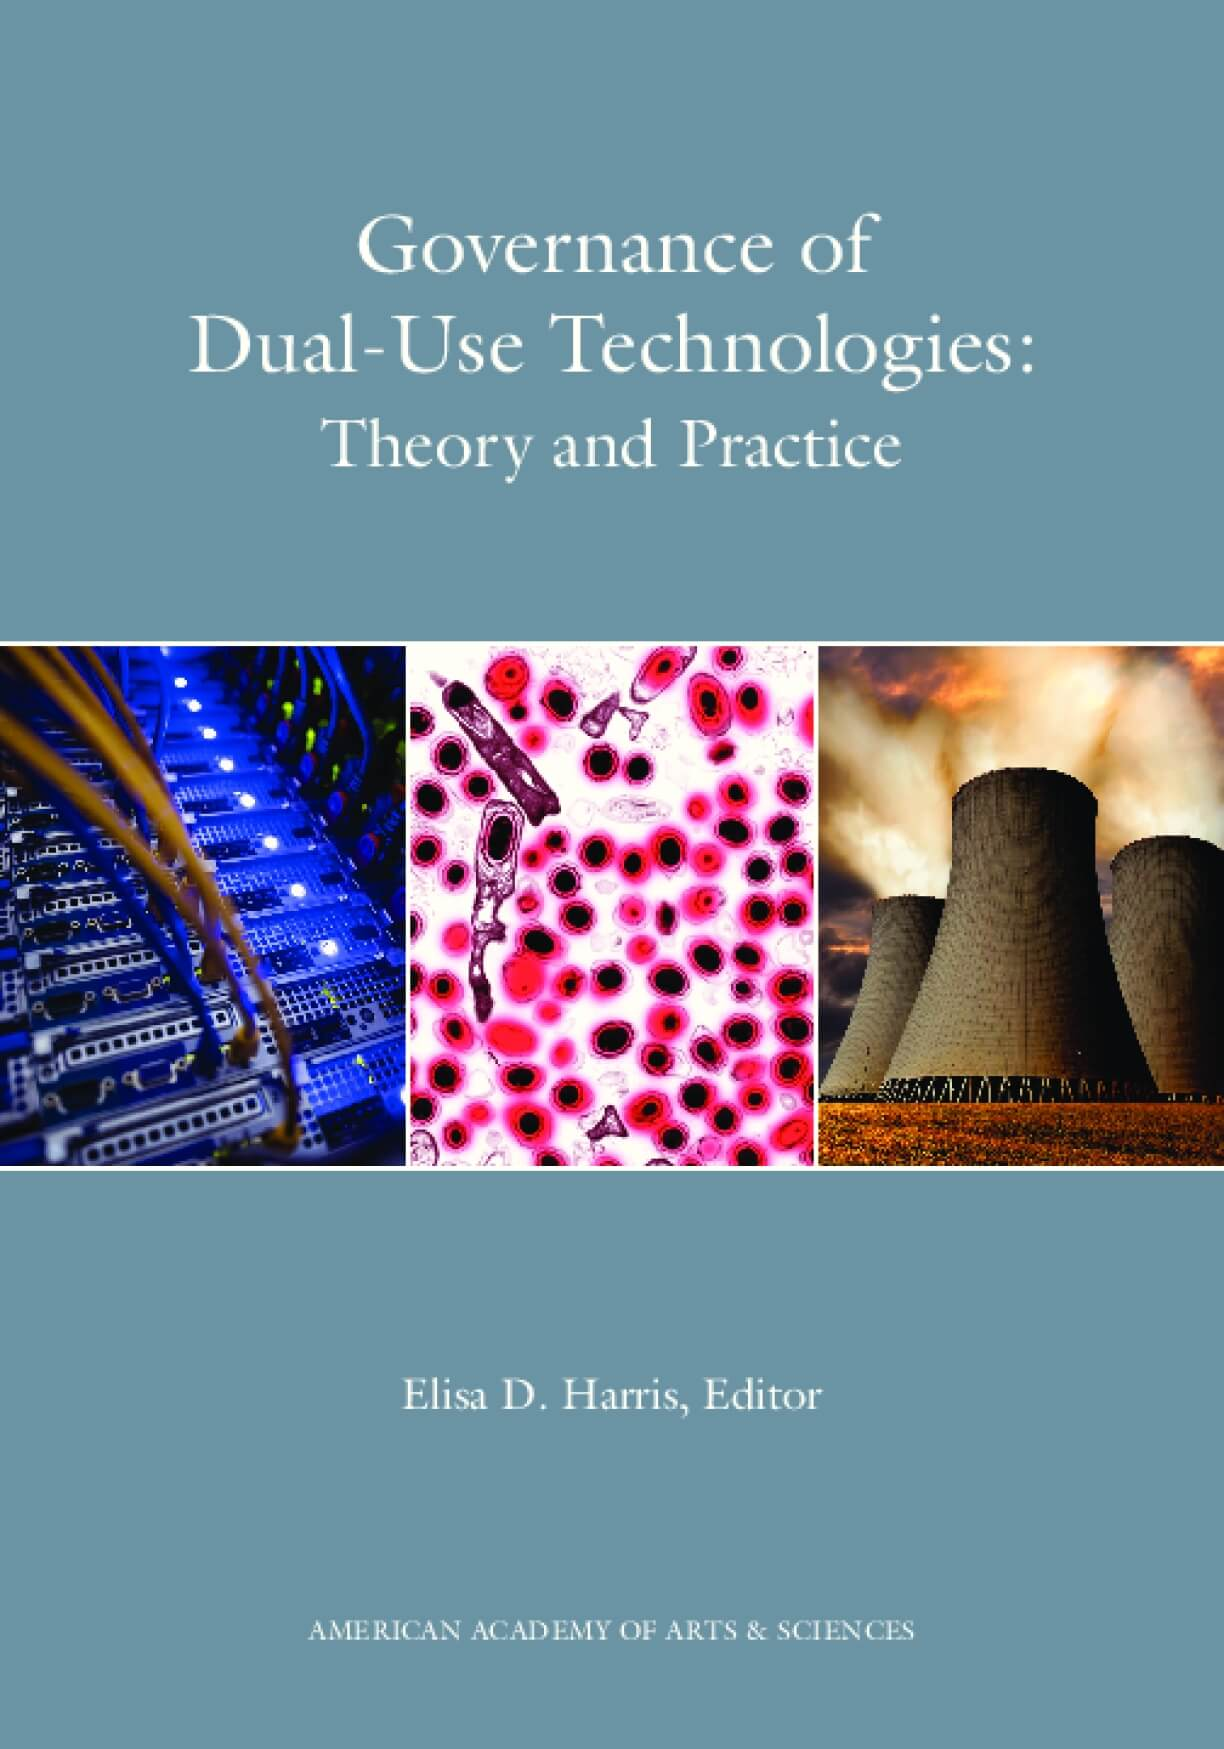 Governance of Dual-Use Technologies: Theory and Practice